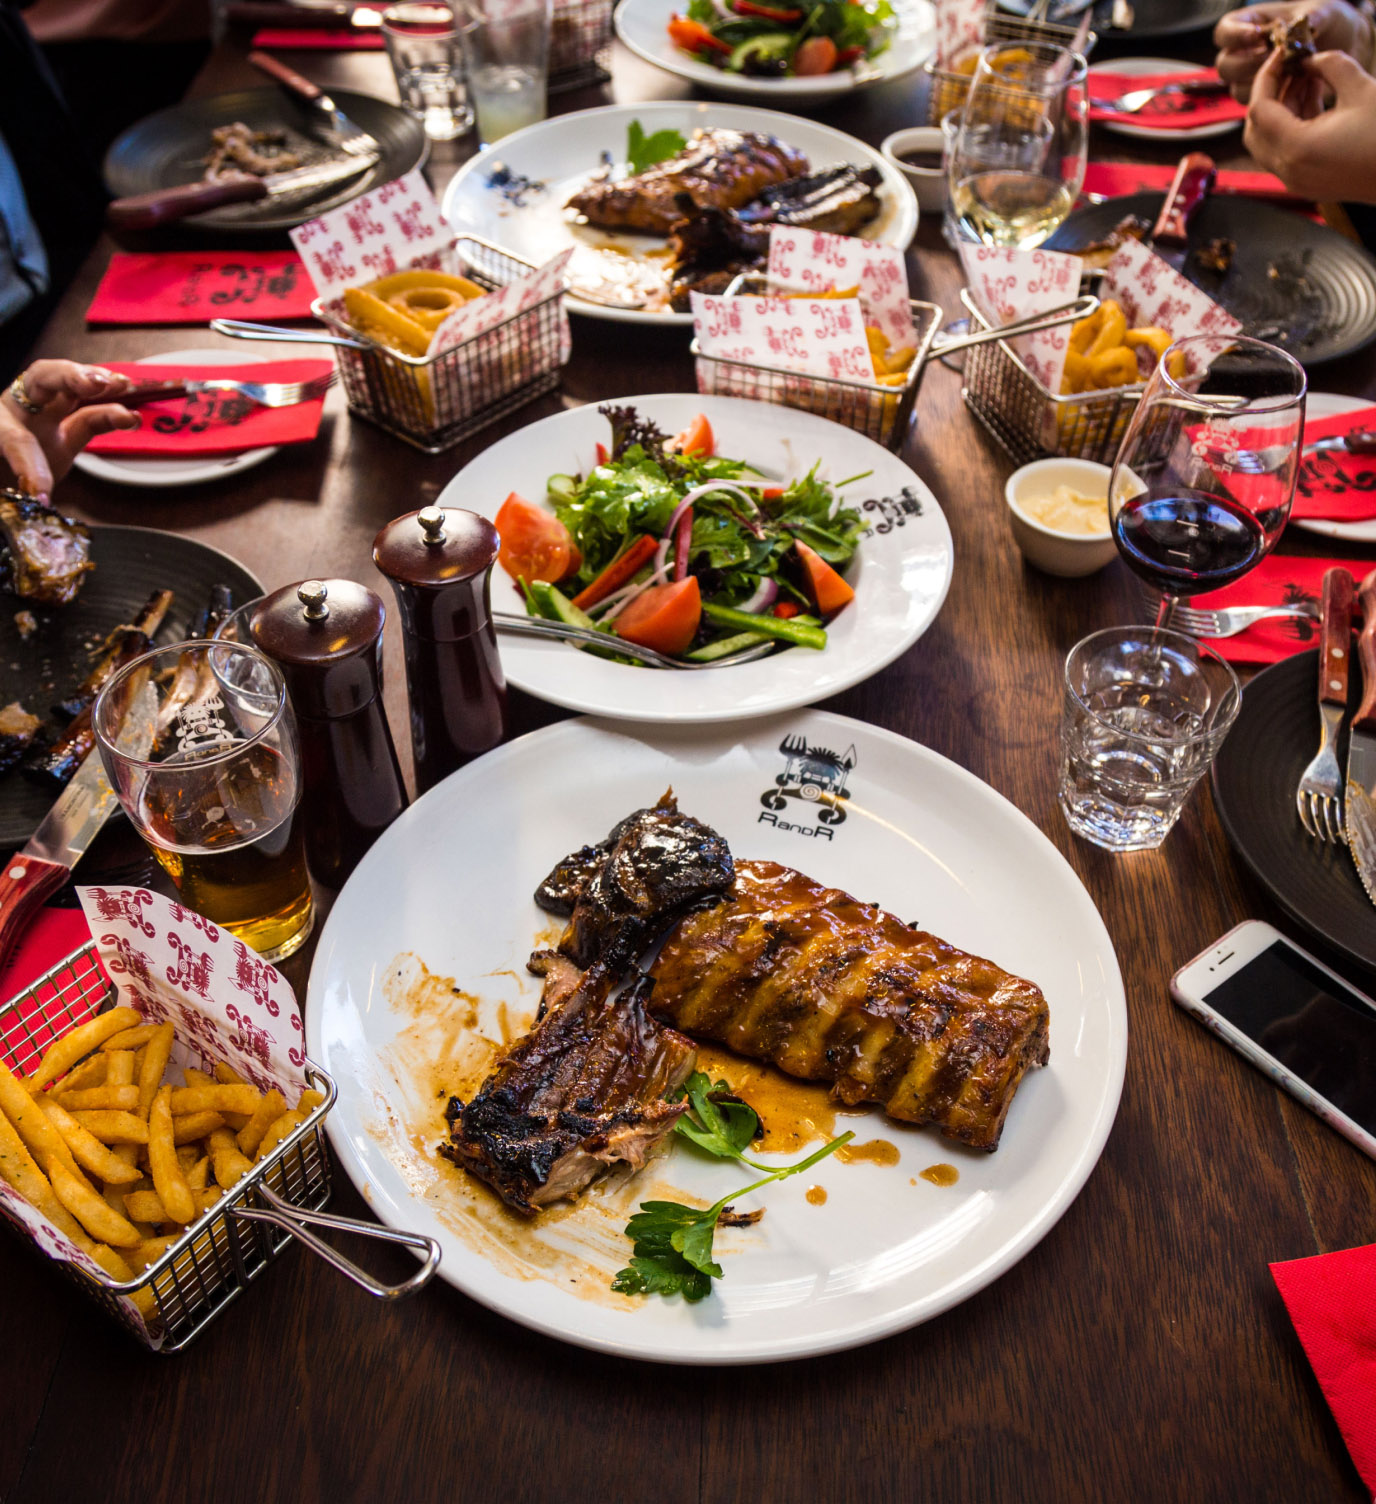 Get the whole gang together, and share a whole table of mouth watering food from Ribs and Rumps.